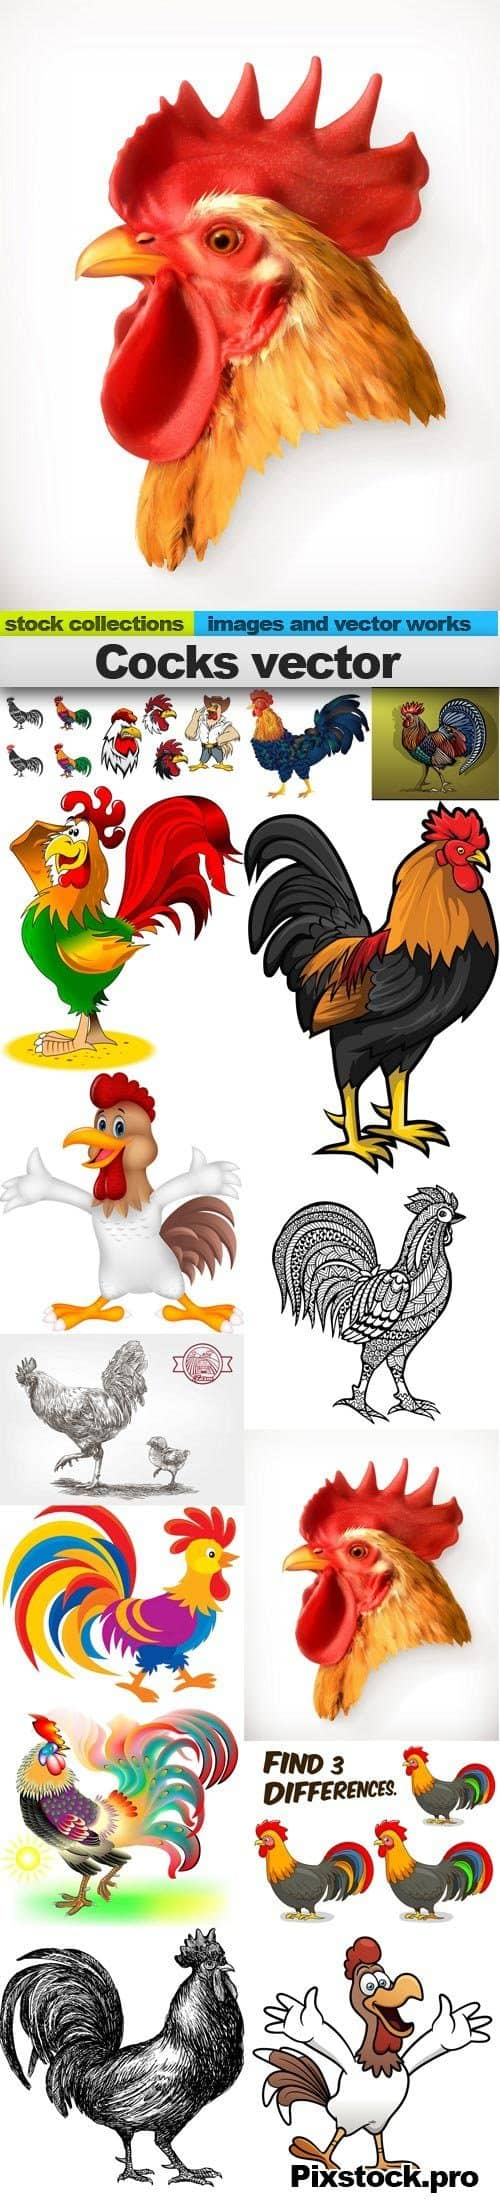 Cocks vector, 15 x EPS